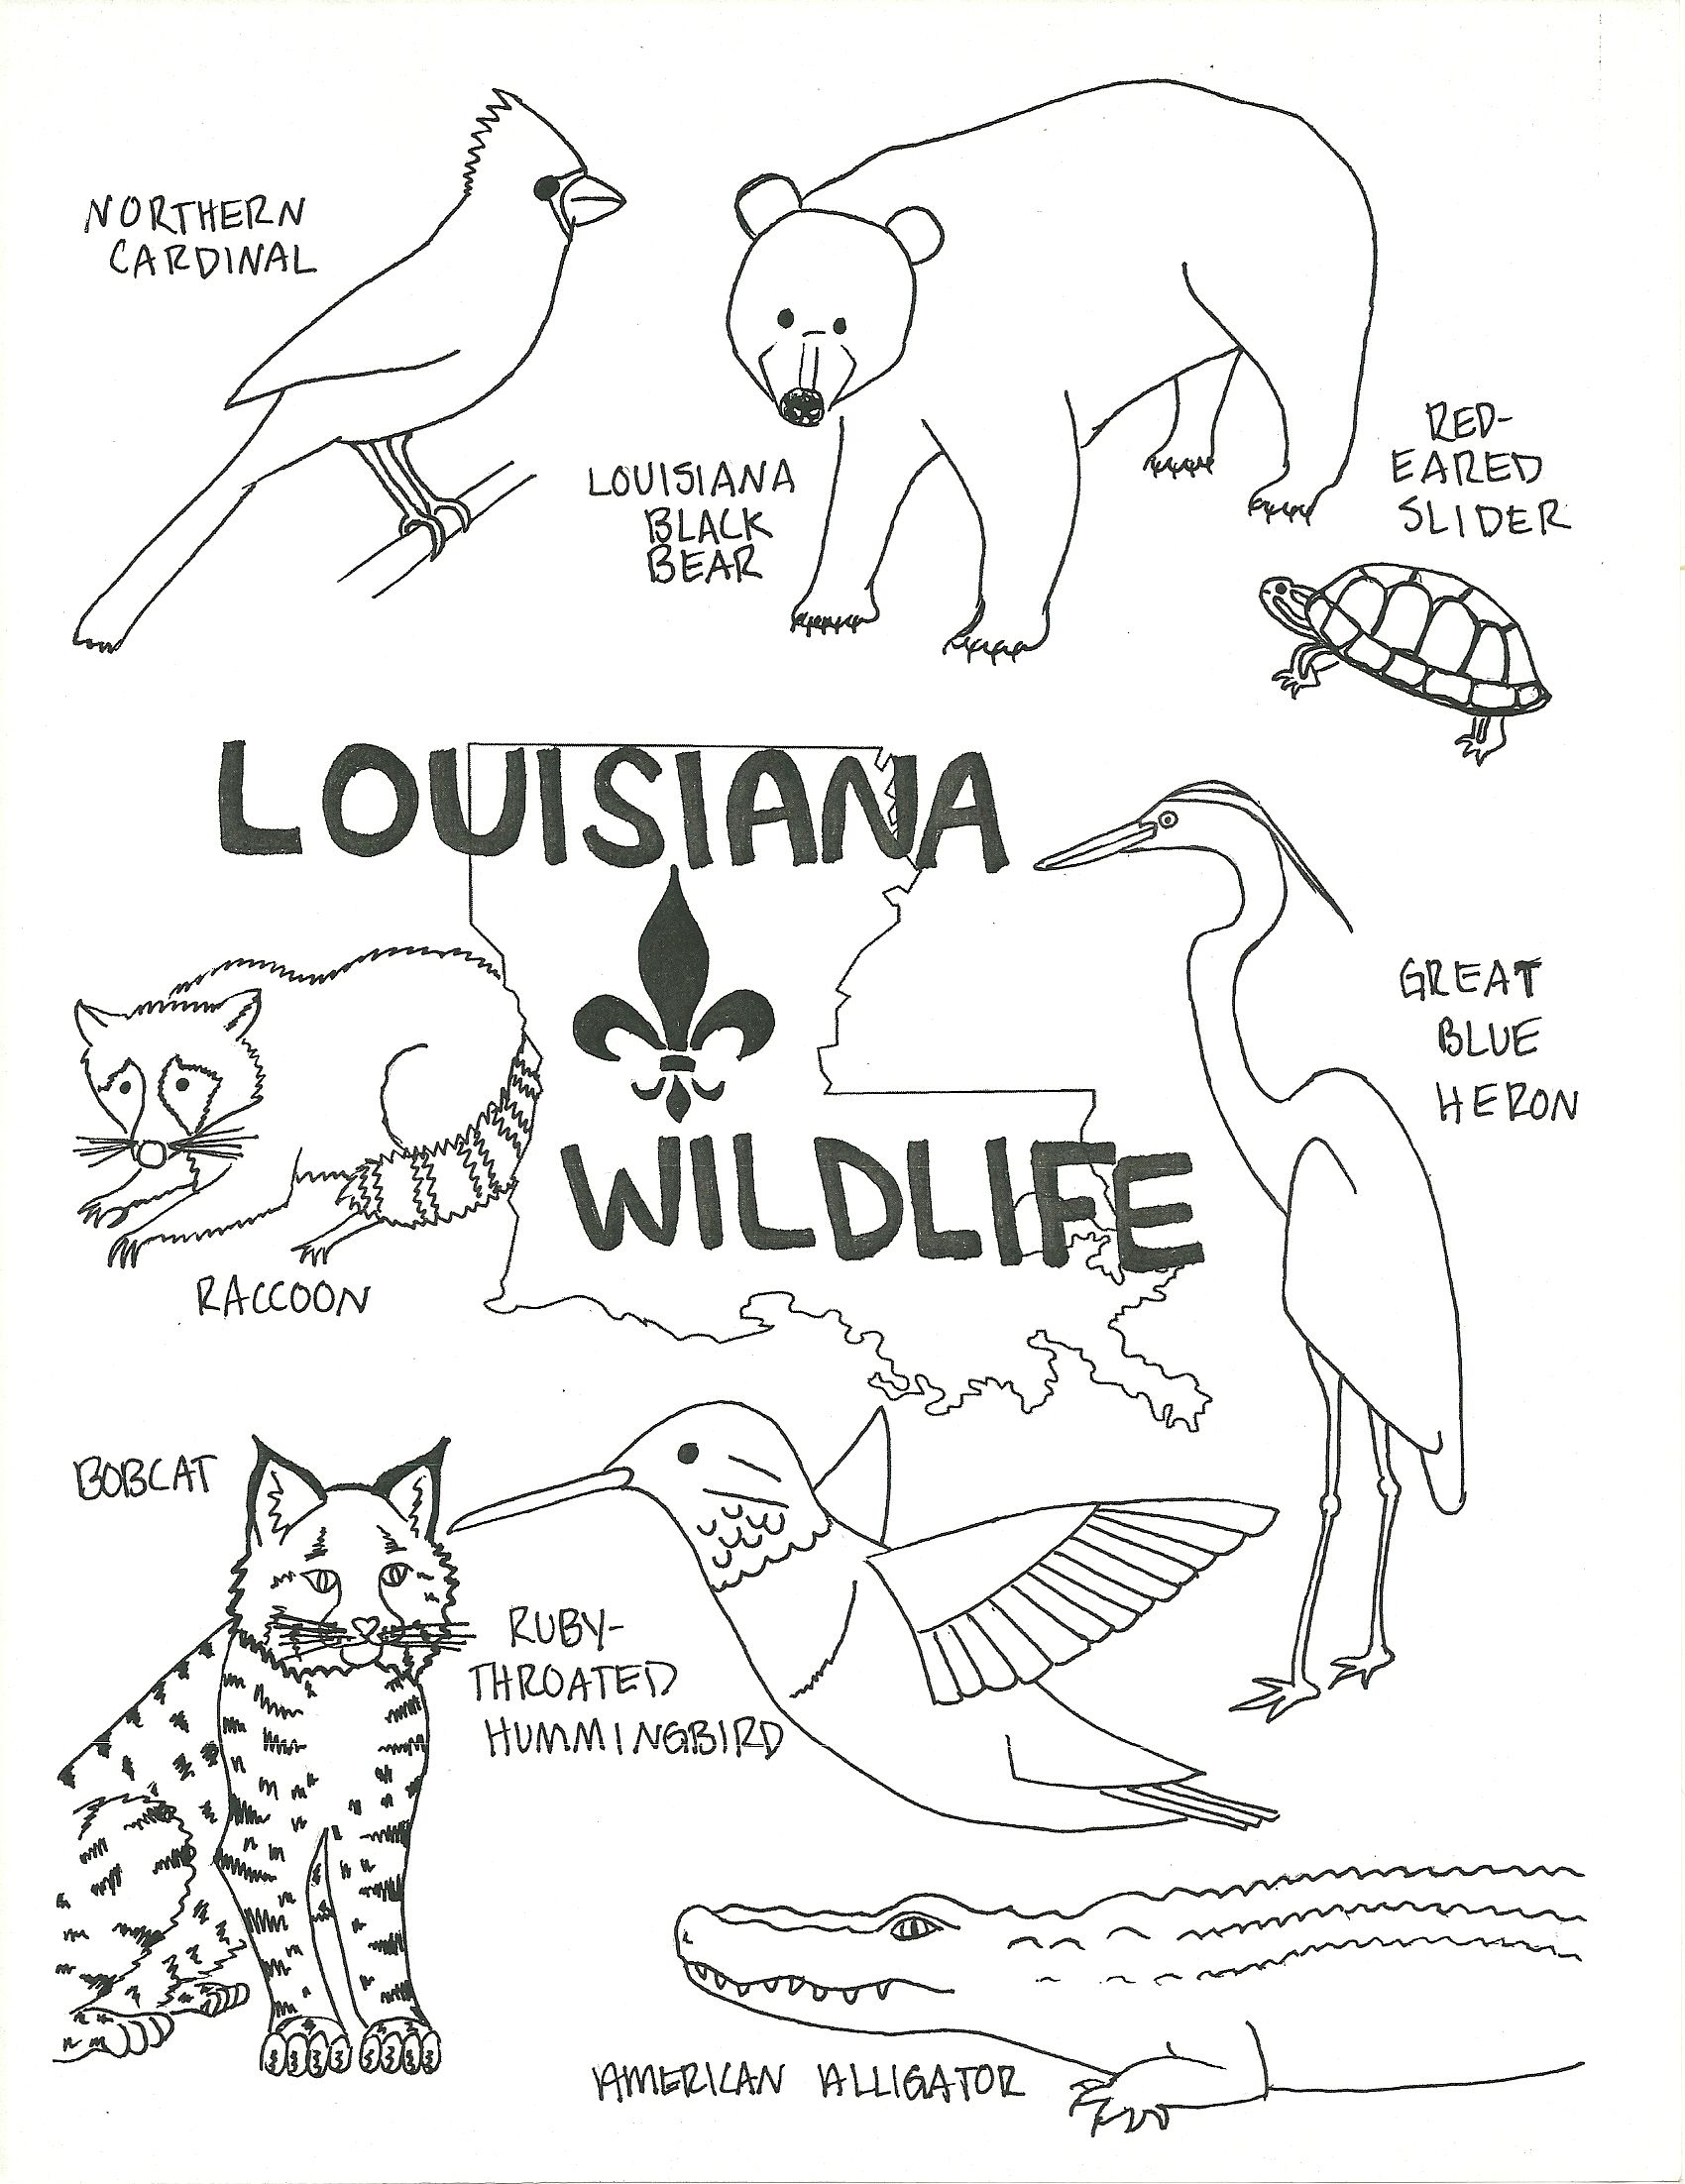 Louisiana Wildlife Coloring Page Free Download Printable